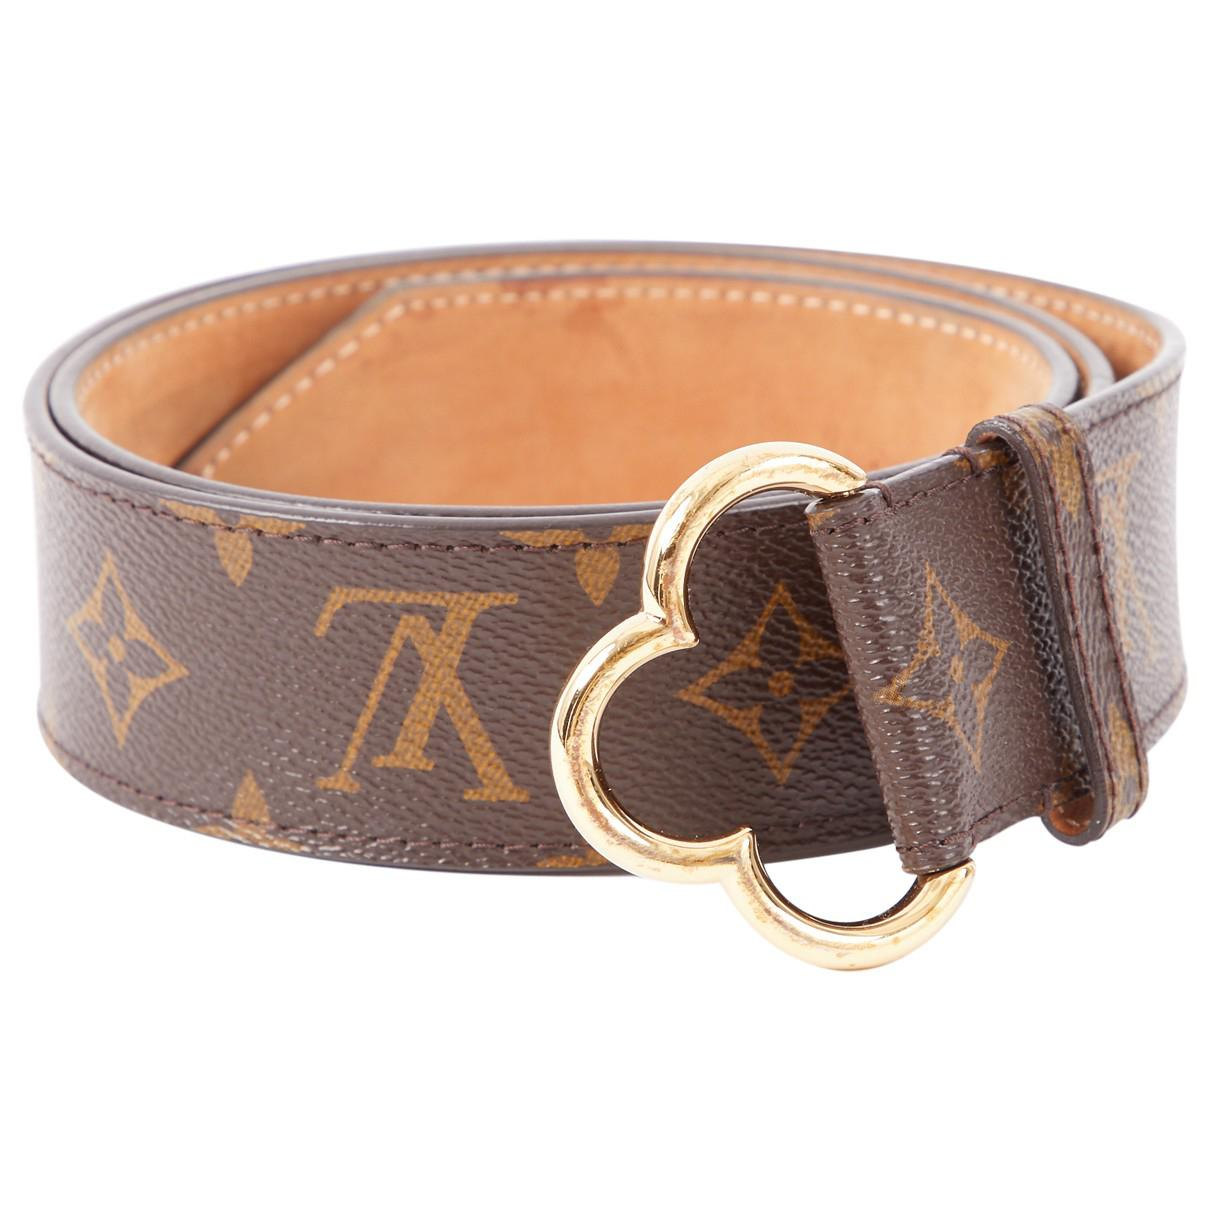 b28d61227dfa Gallery. Previously sold at  Vestiaire Collective · Women s Leather Belts  ...